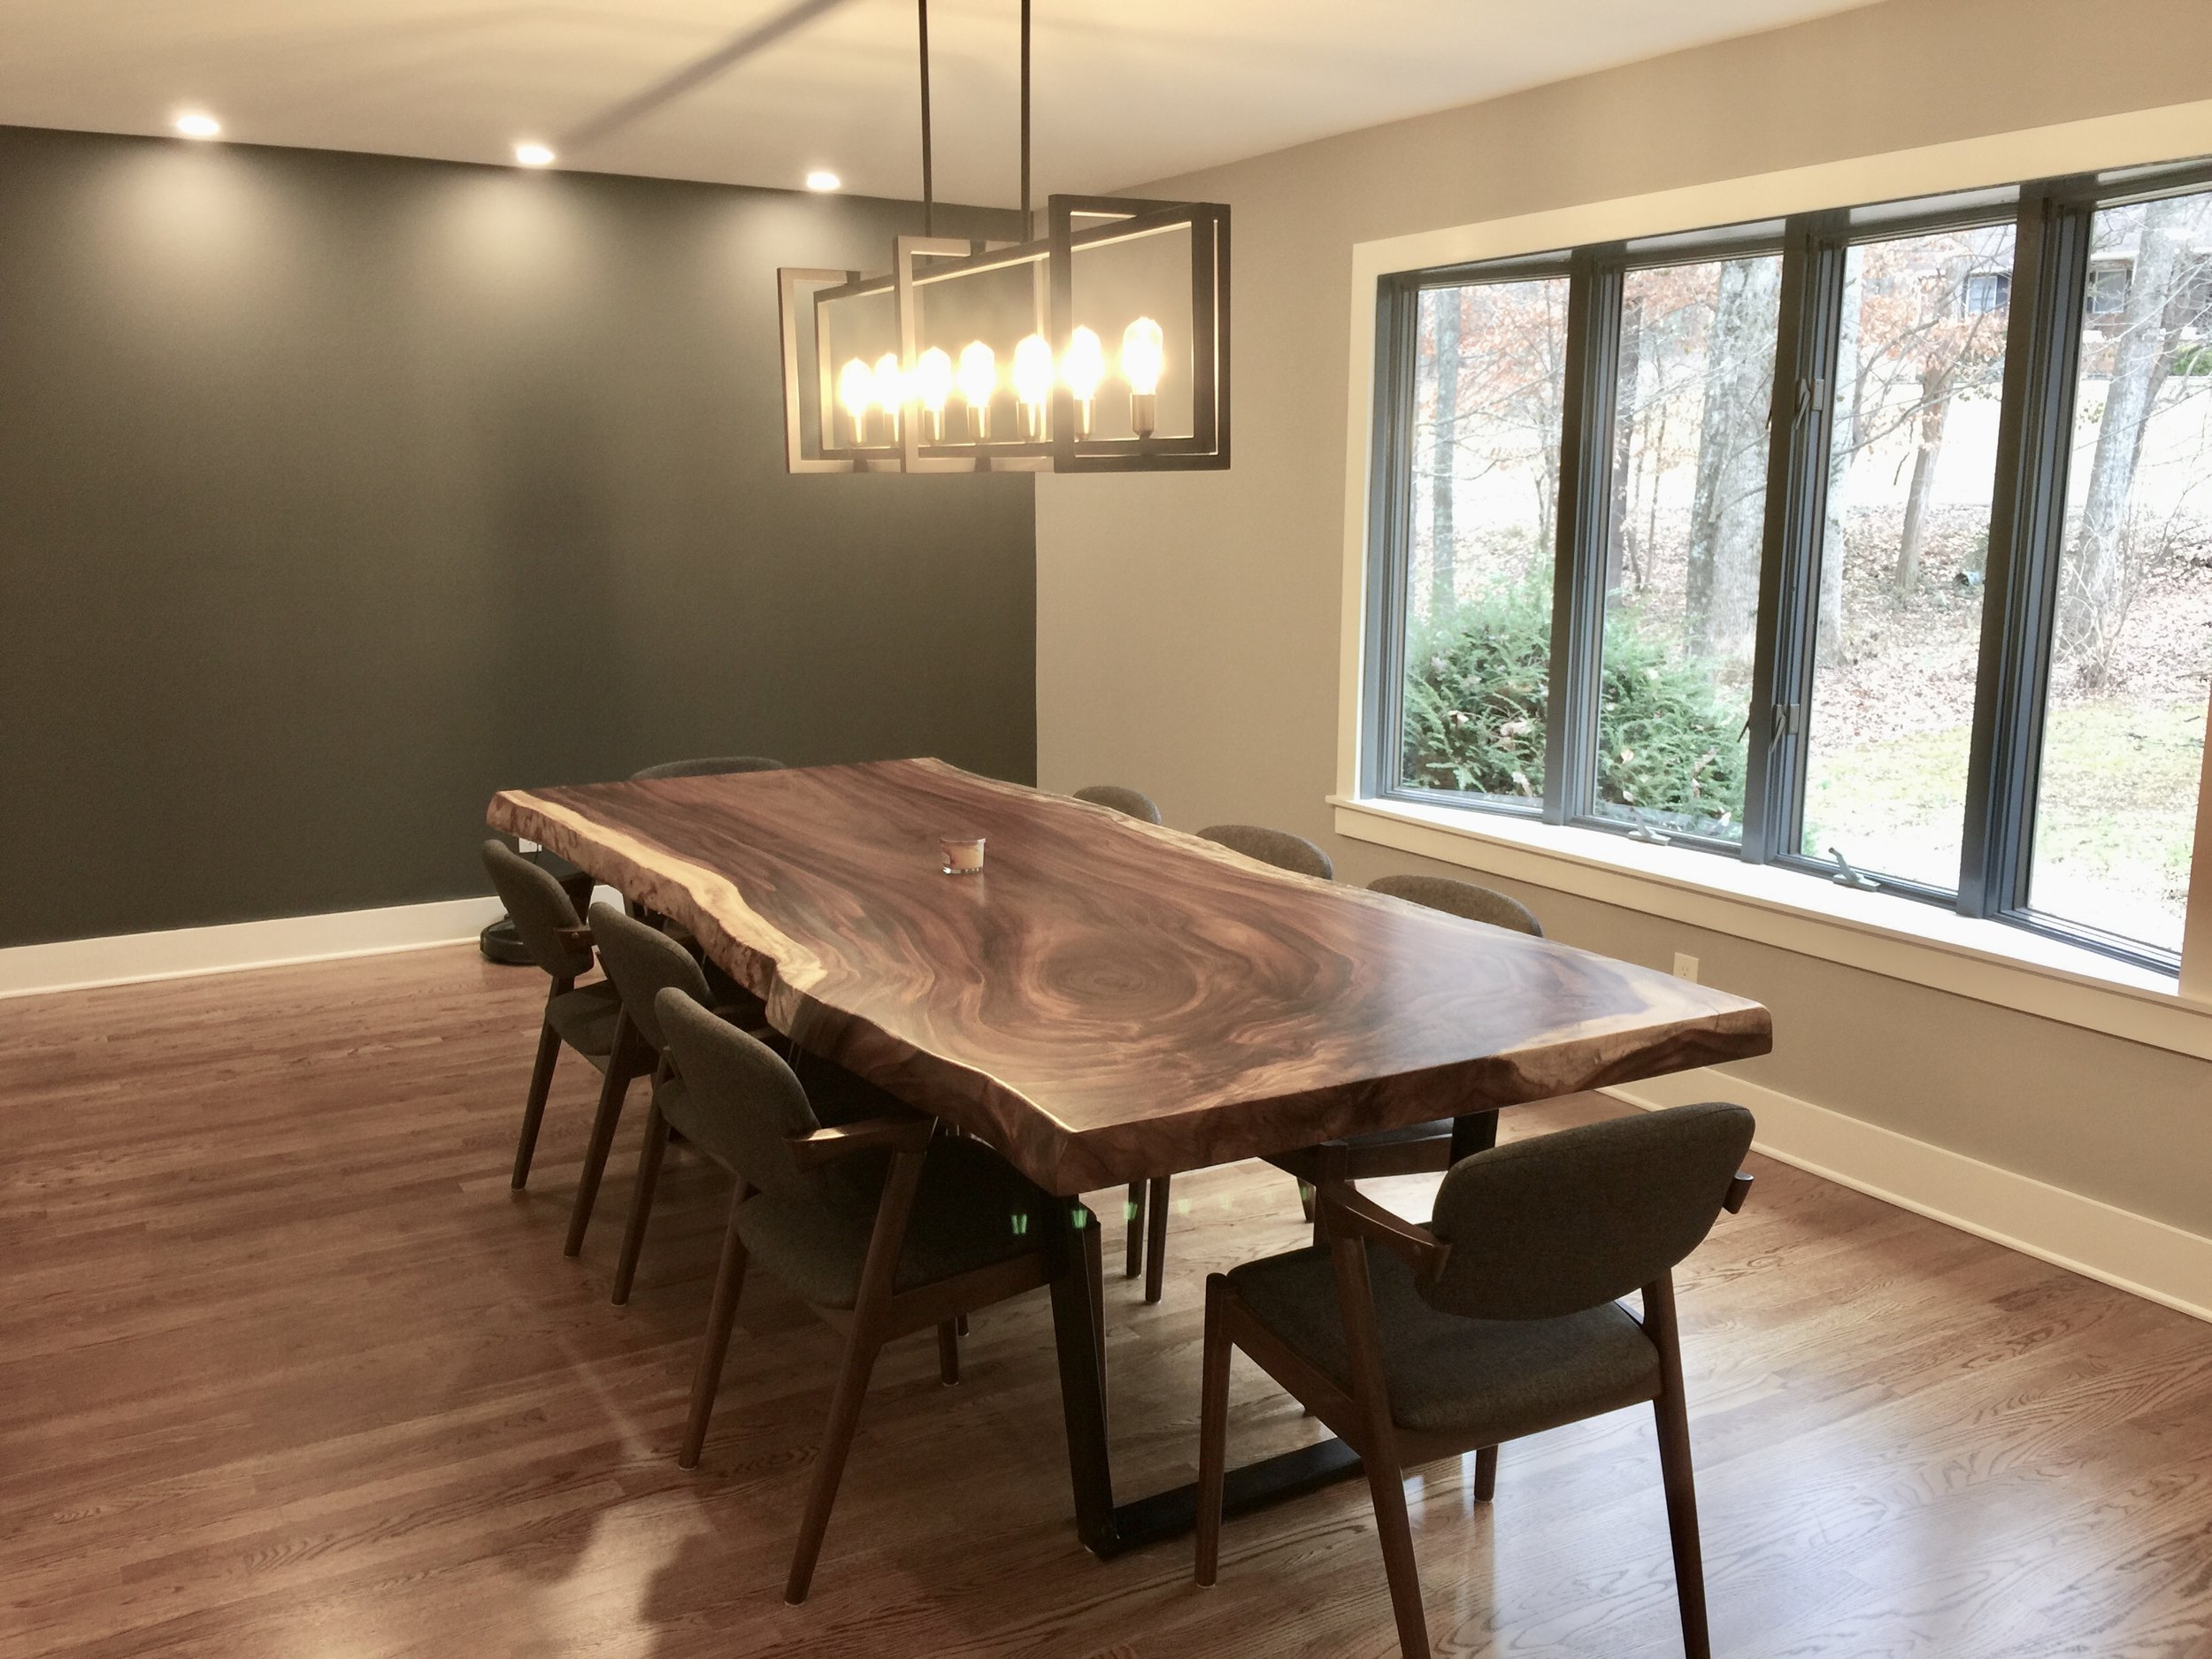 The bespoke live-edge dining room table was built by a woodworker in Blowing Rock, NC.